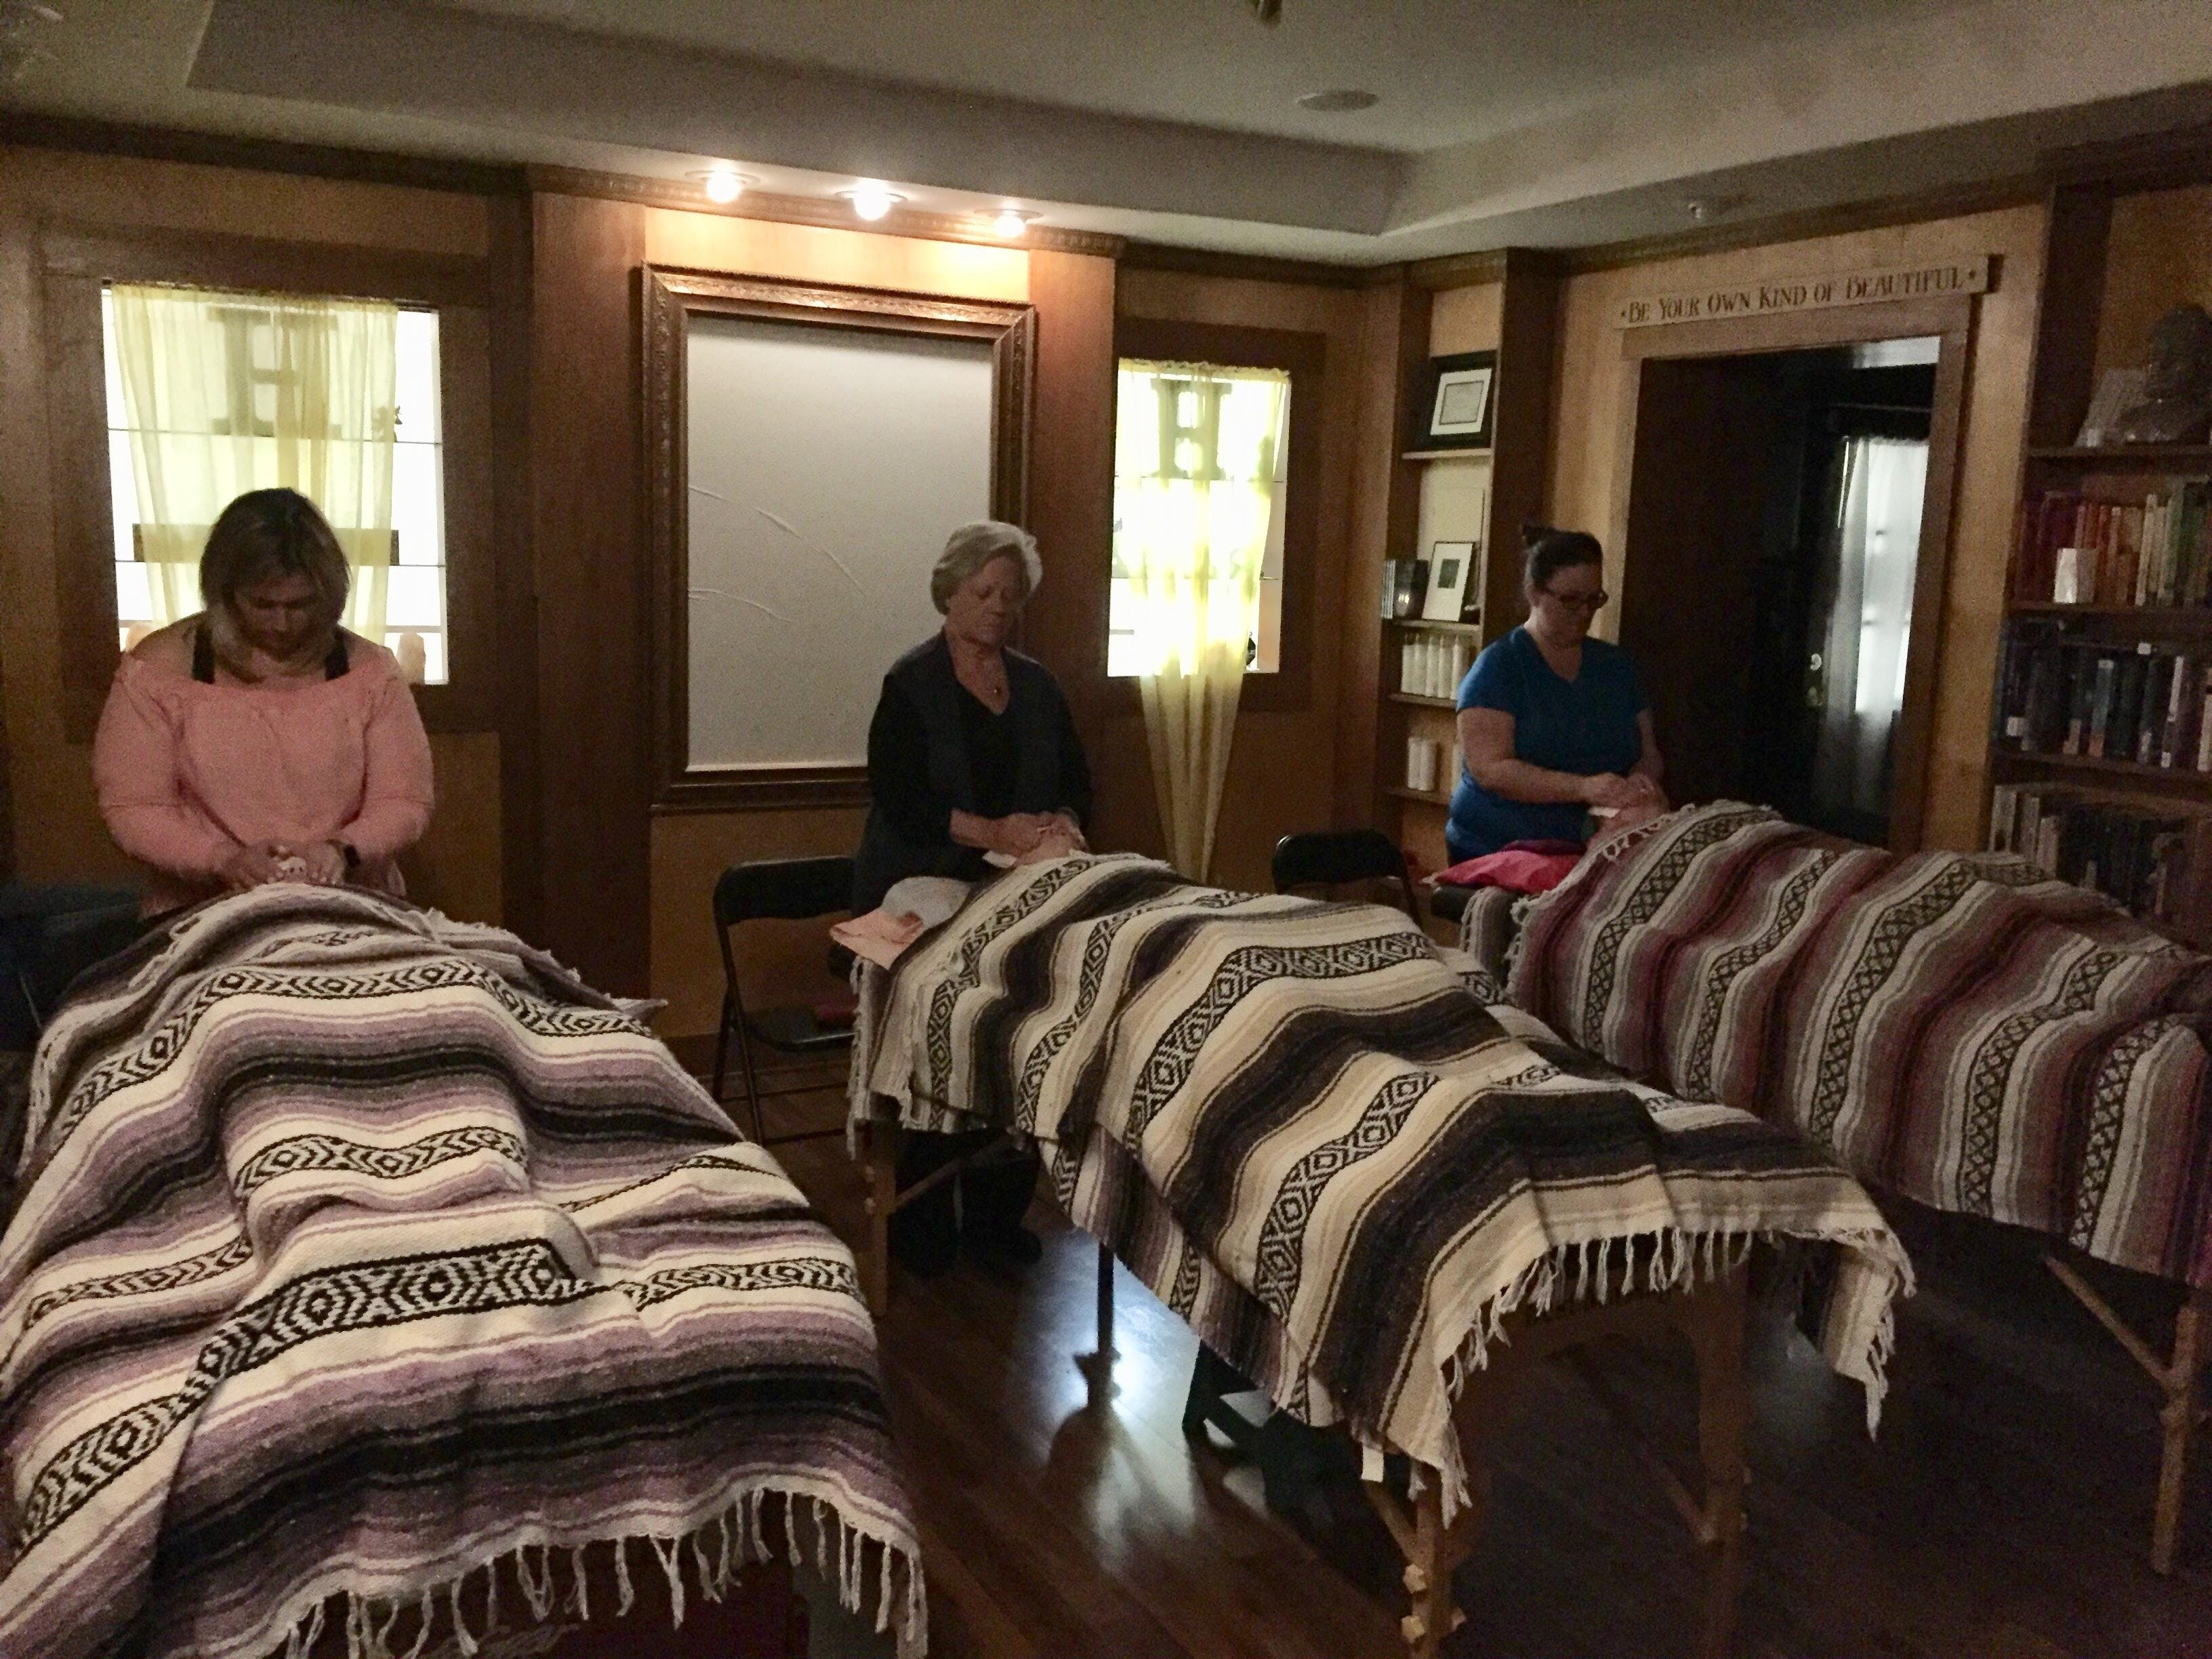 Reiki Level 1 Training, 12 Hour Certification